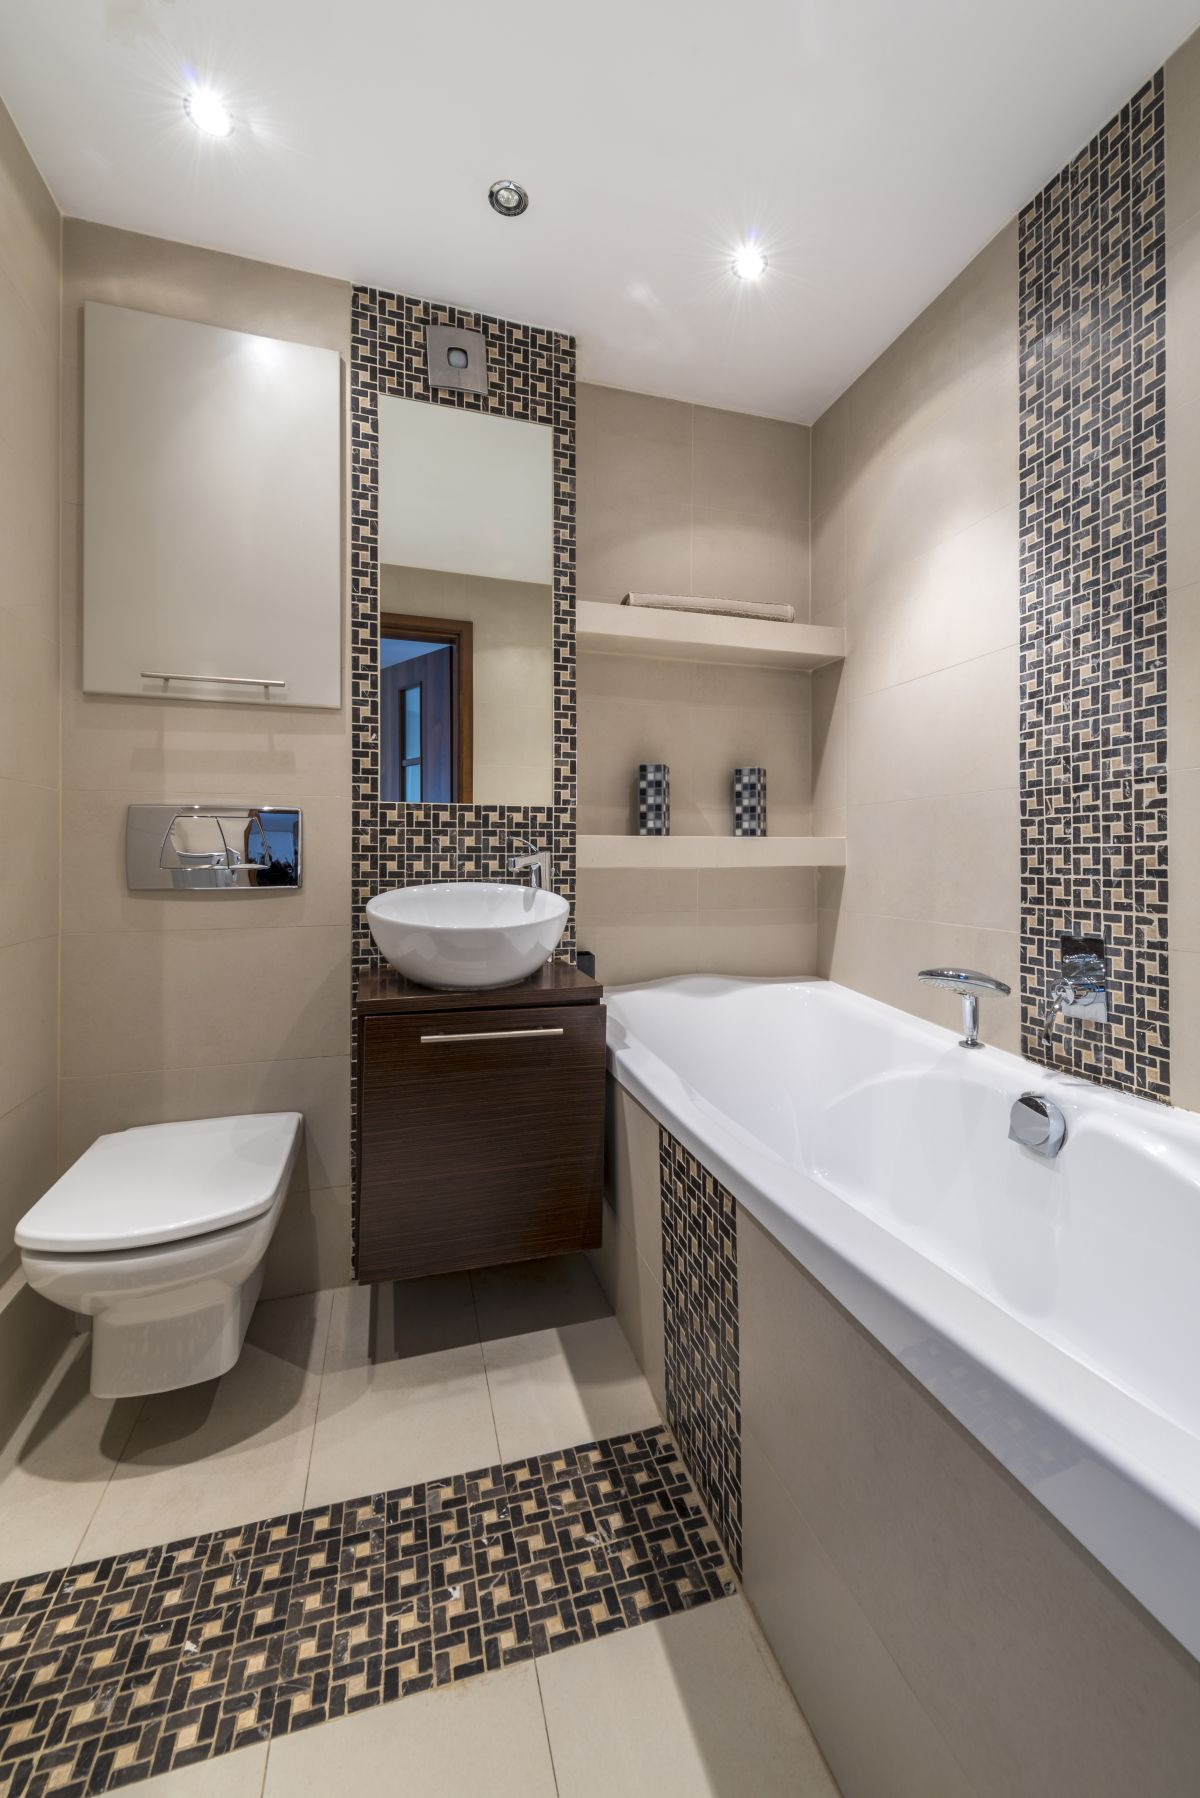 Size matters bathroom renovation costs for your size bath for Small bathroom reno